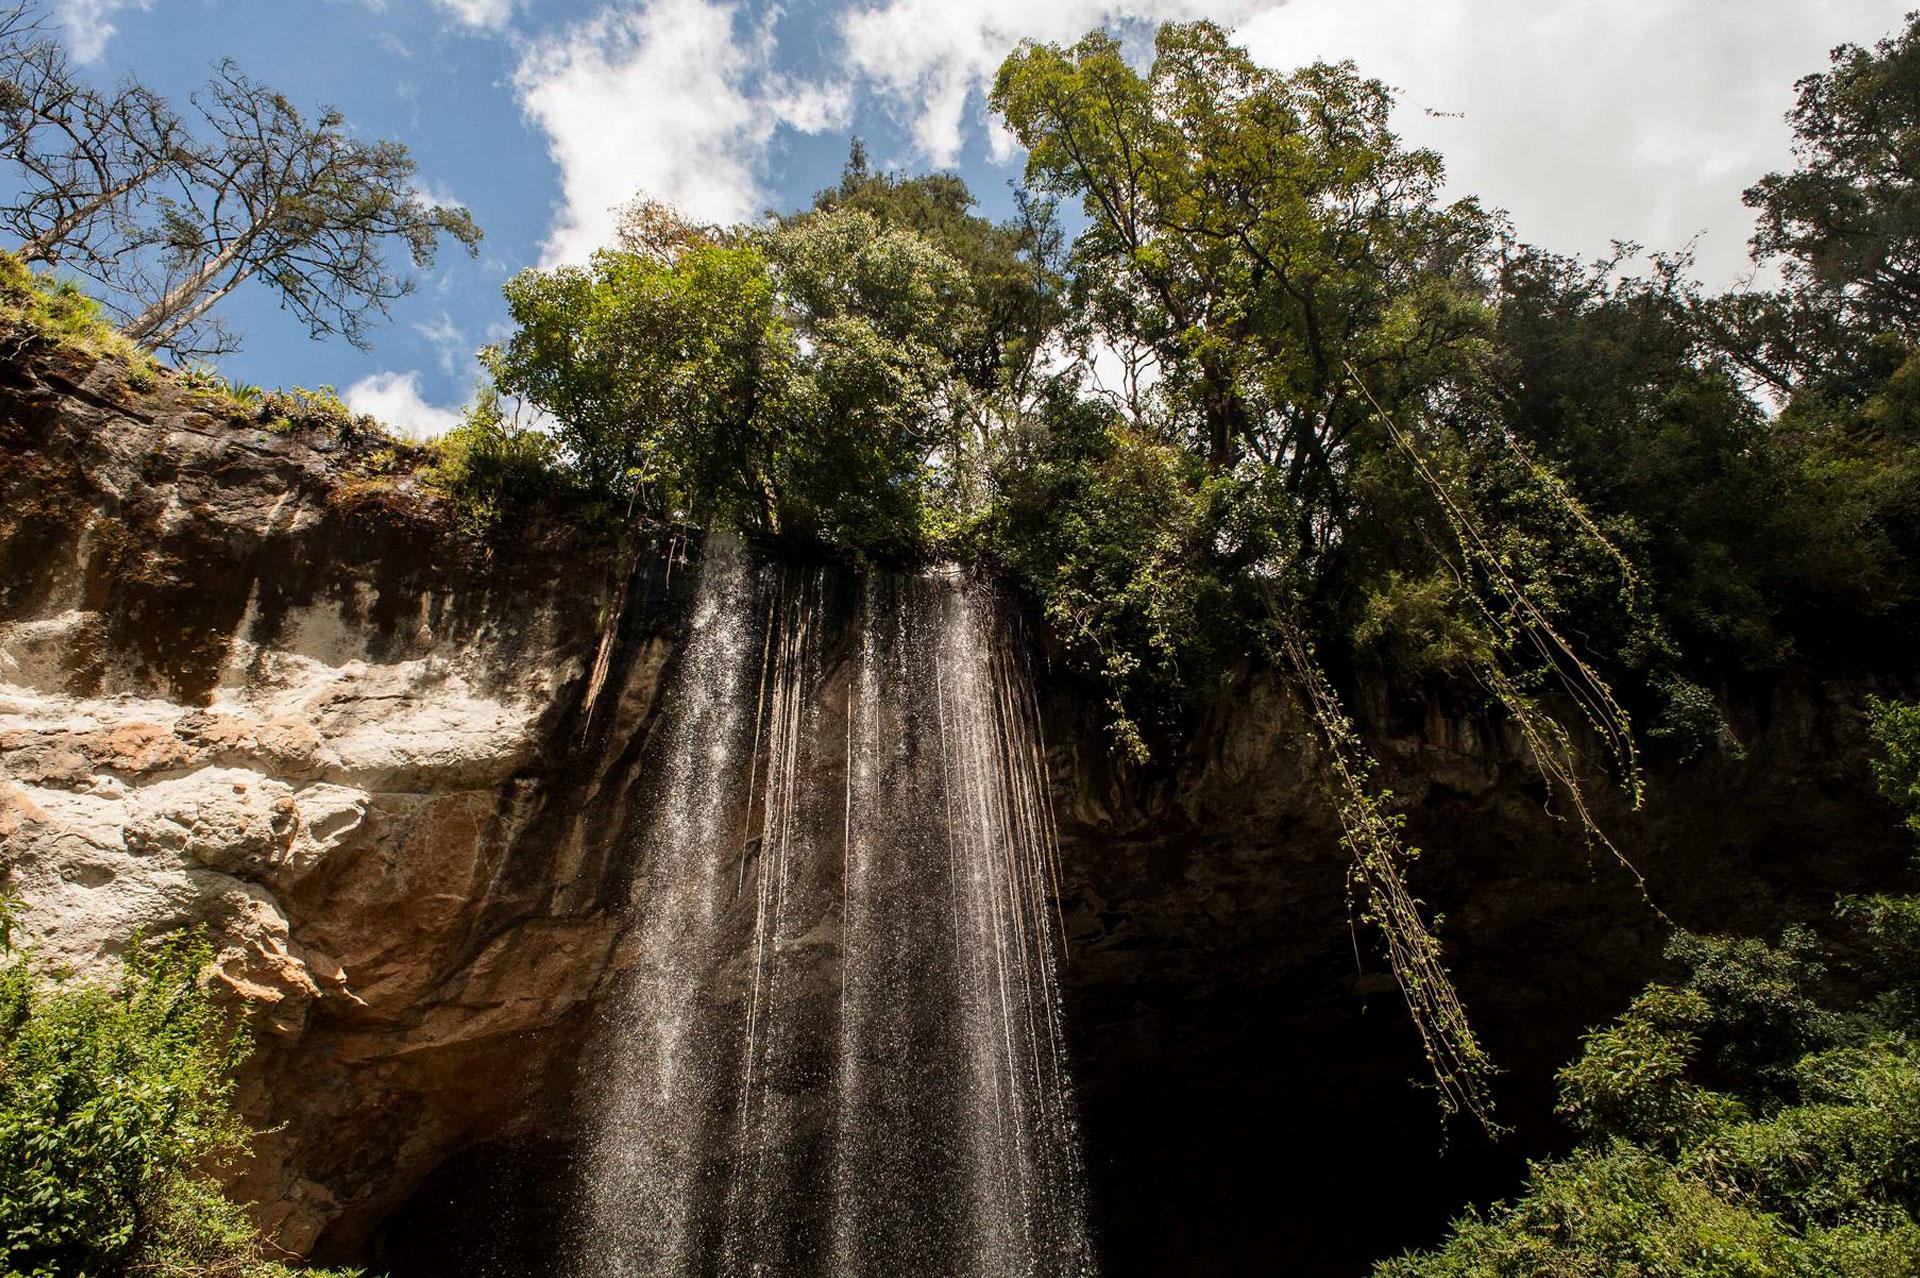 Diani_travel_center_National_Parks_in_Kenya_Mount_Elgon_National_park_image_3jpg